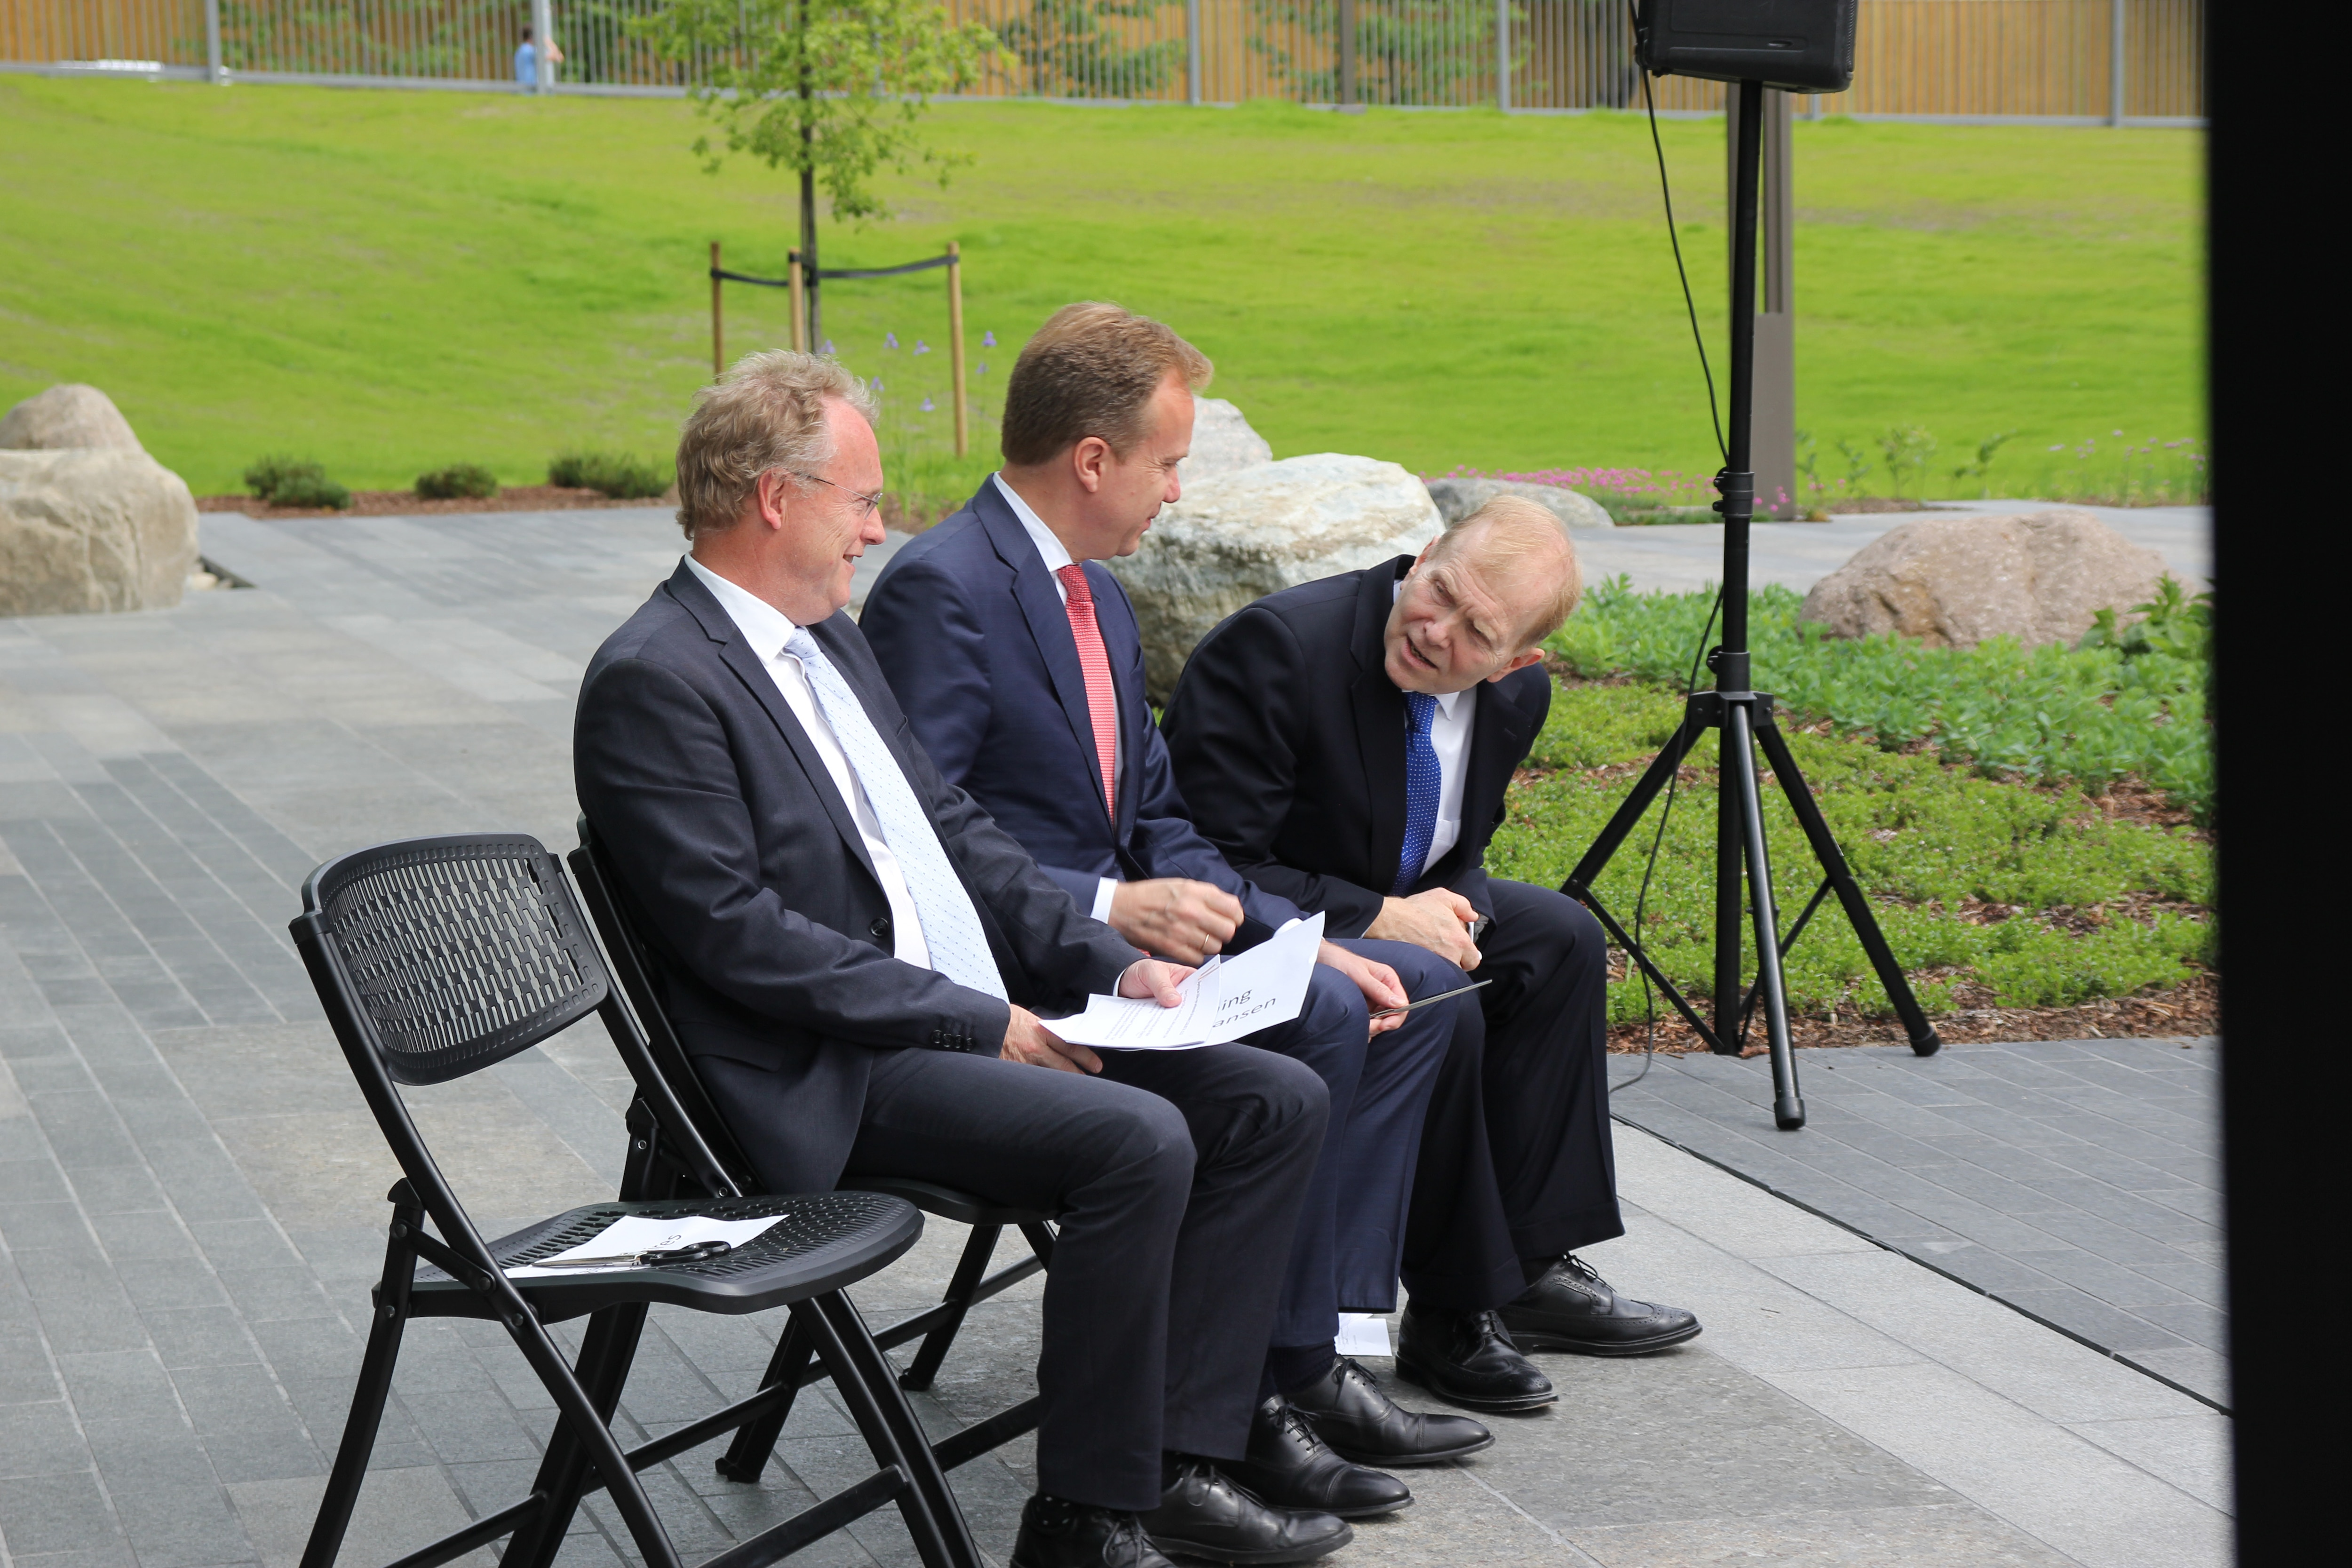 Governing Mayor of Oslo Raymond Johansen, Foreign Minister Børge Brende and OBO's Director William Moser wait for the ceremony to start.